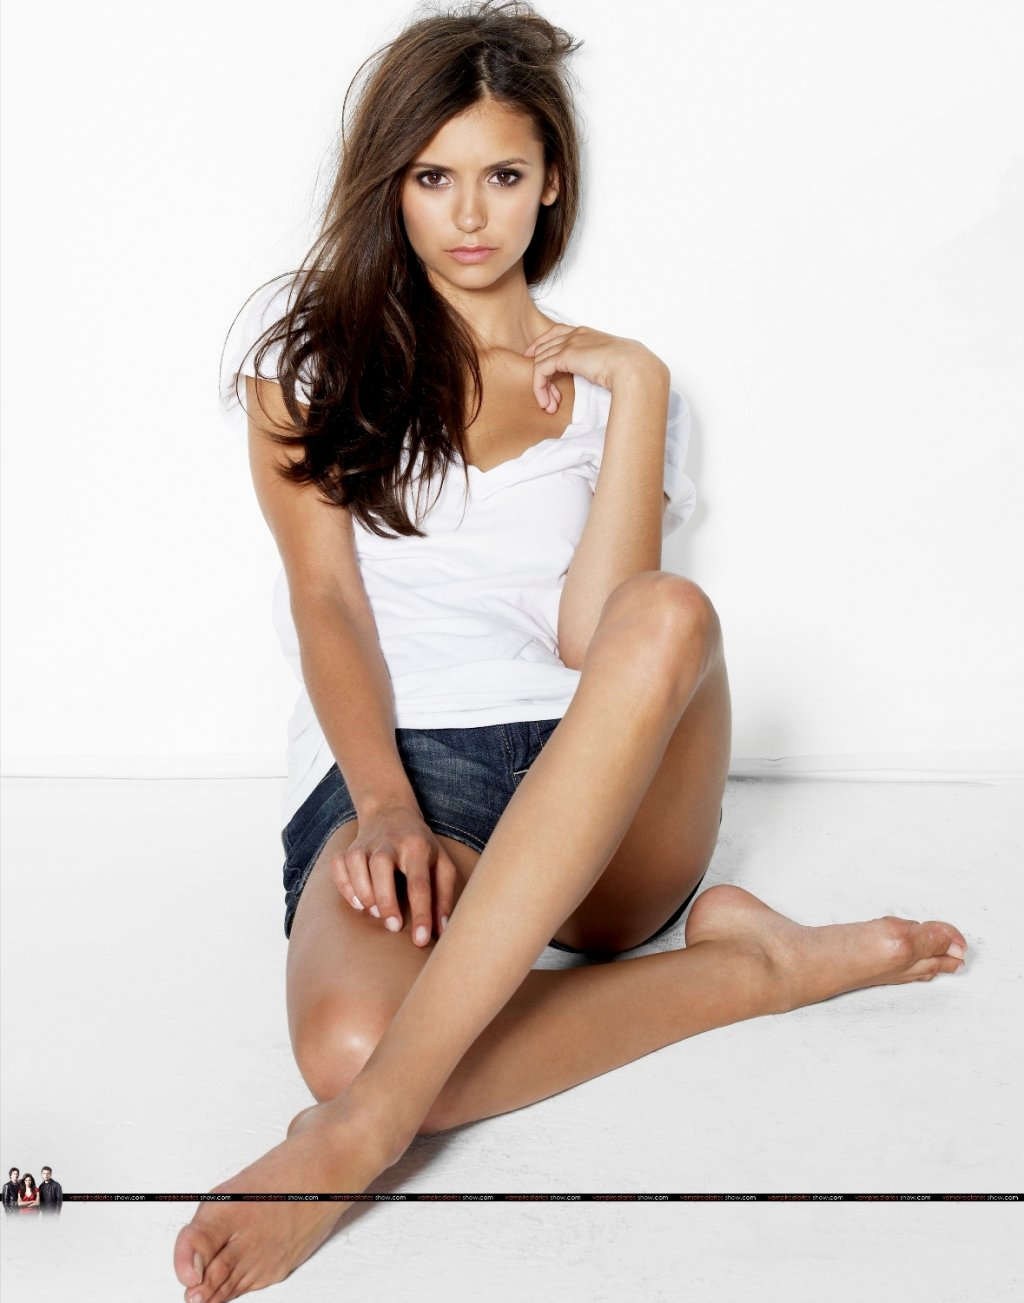 Nina Dobrev hot wallpapers